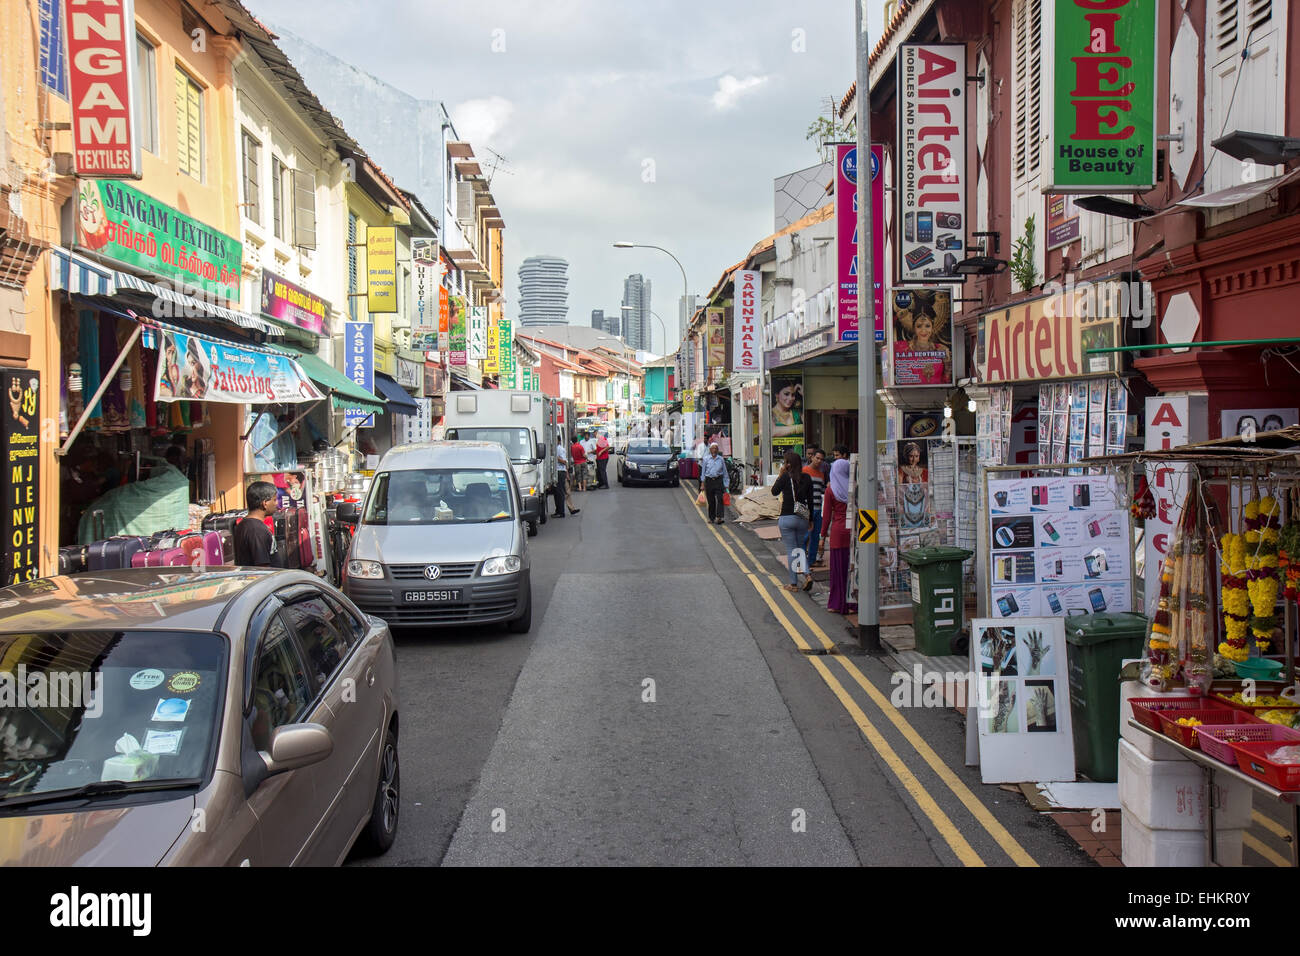 Shopping street in the little indian district in singapore for City indian dining ltd t a spice trader